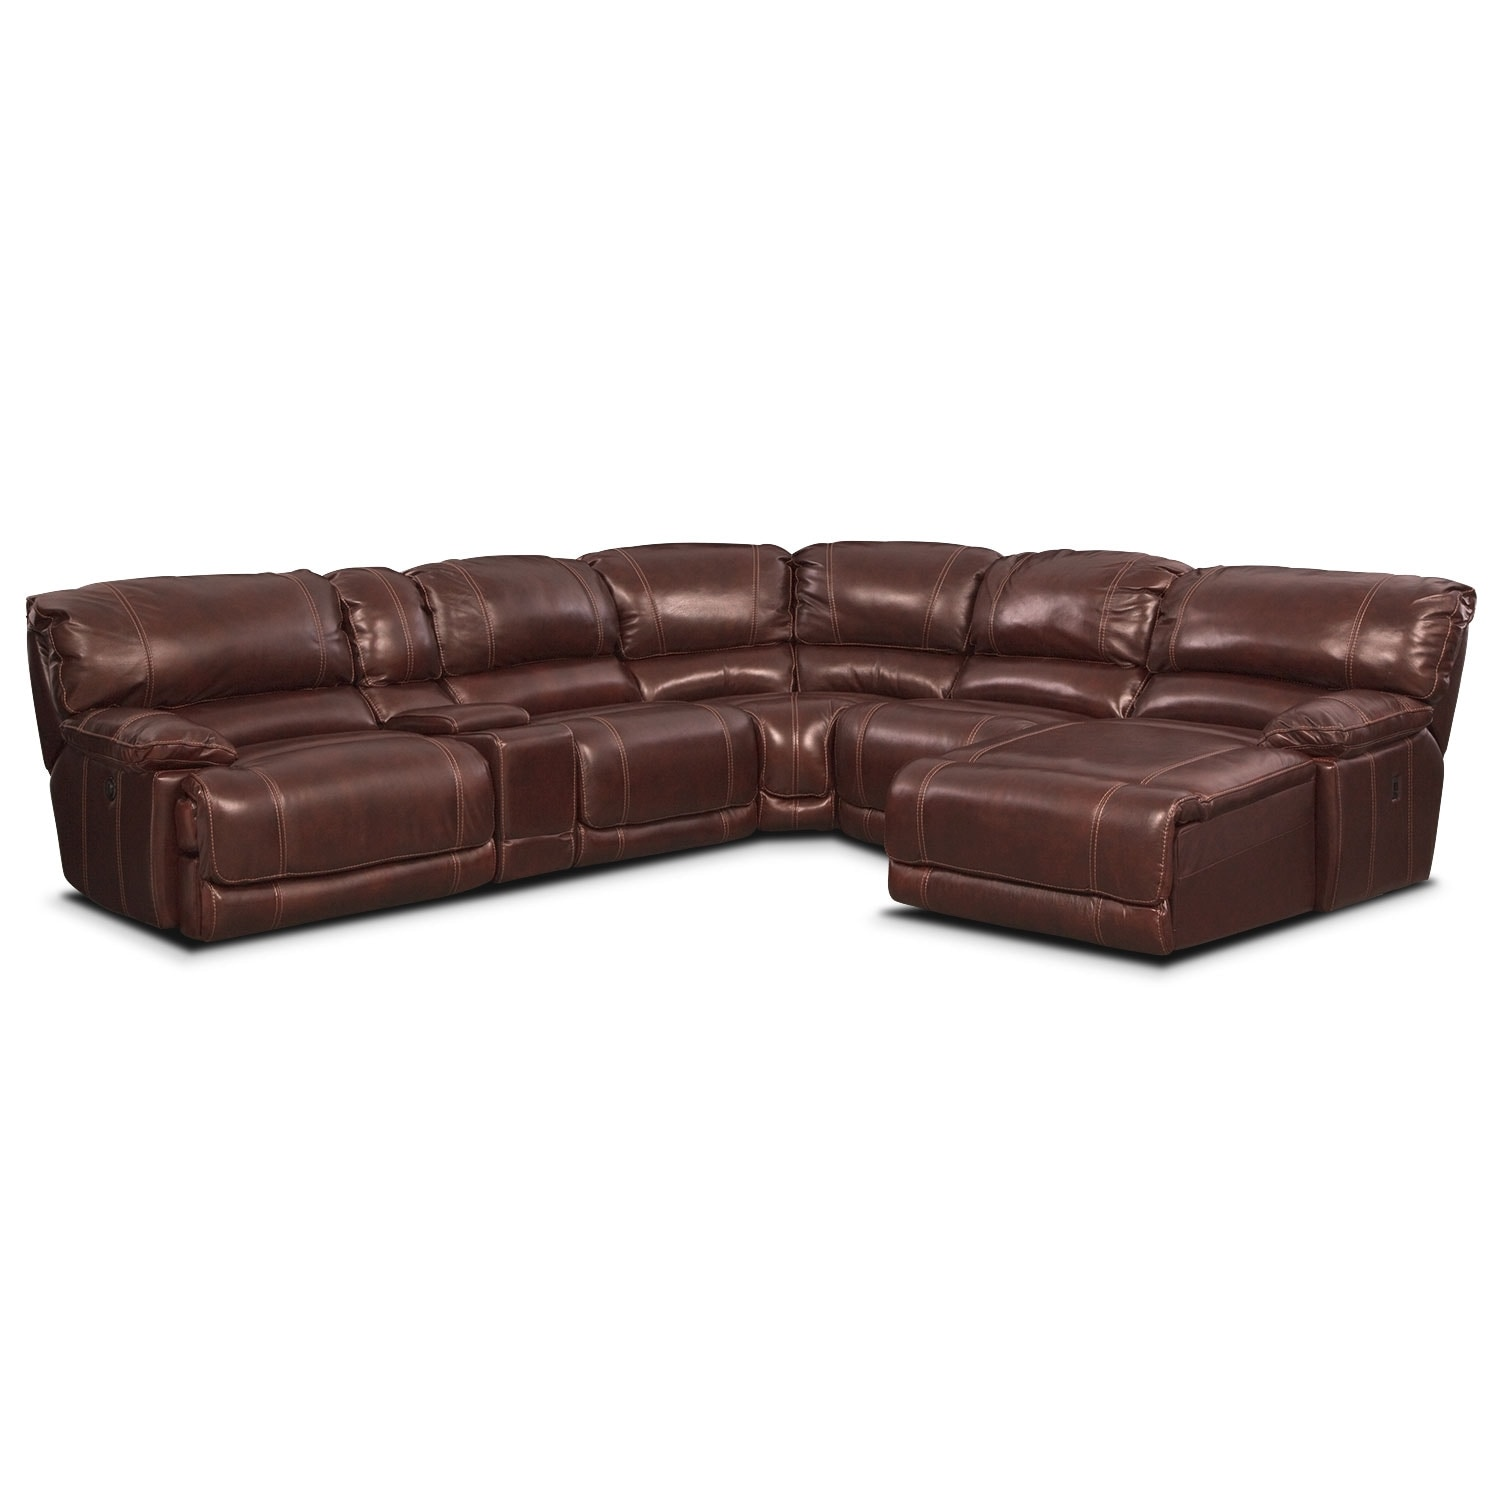 Living Room Furniture - St. Malo III 6 Pc. Power Reclining Sectional